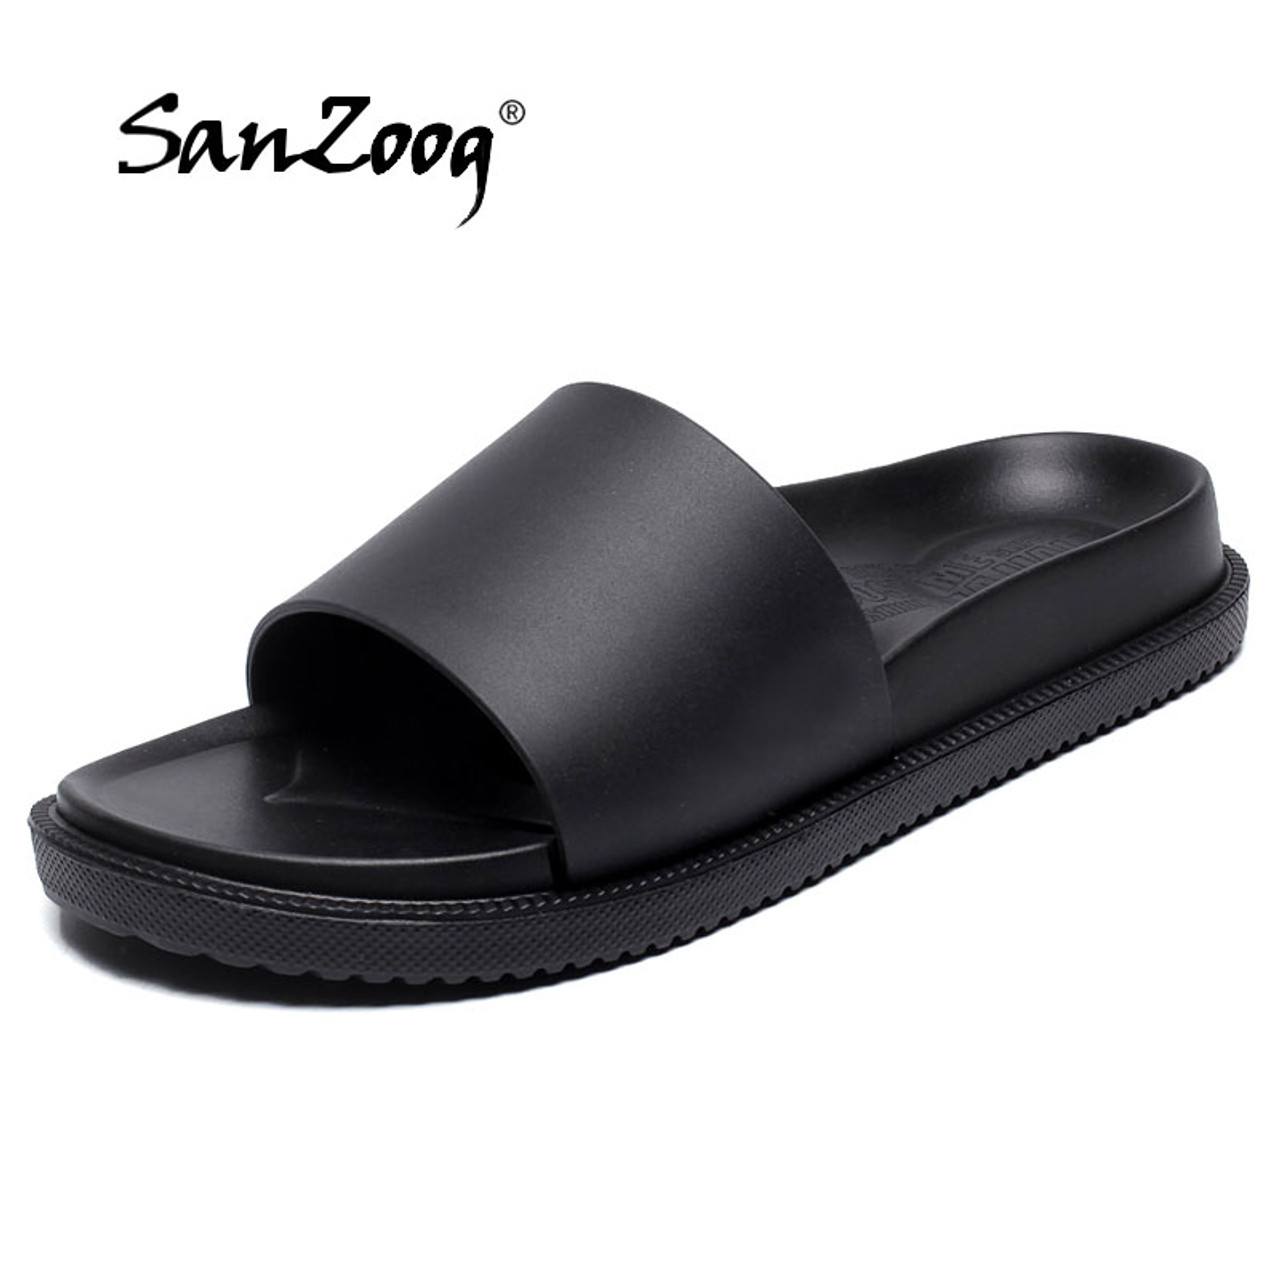 af92bef0b Home Slippers Men Casual Black and White Shoes Non-slip Slides Bathroom  2018 New Summer ...